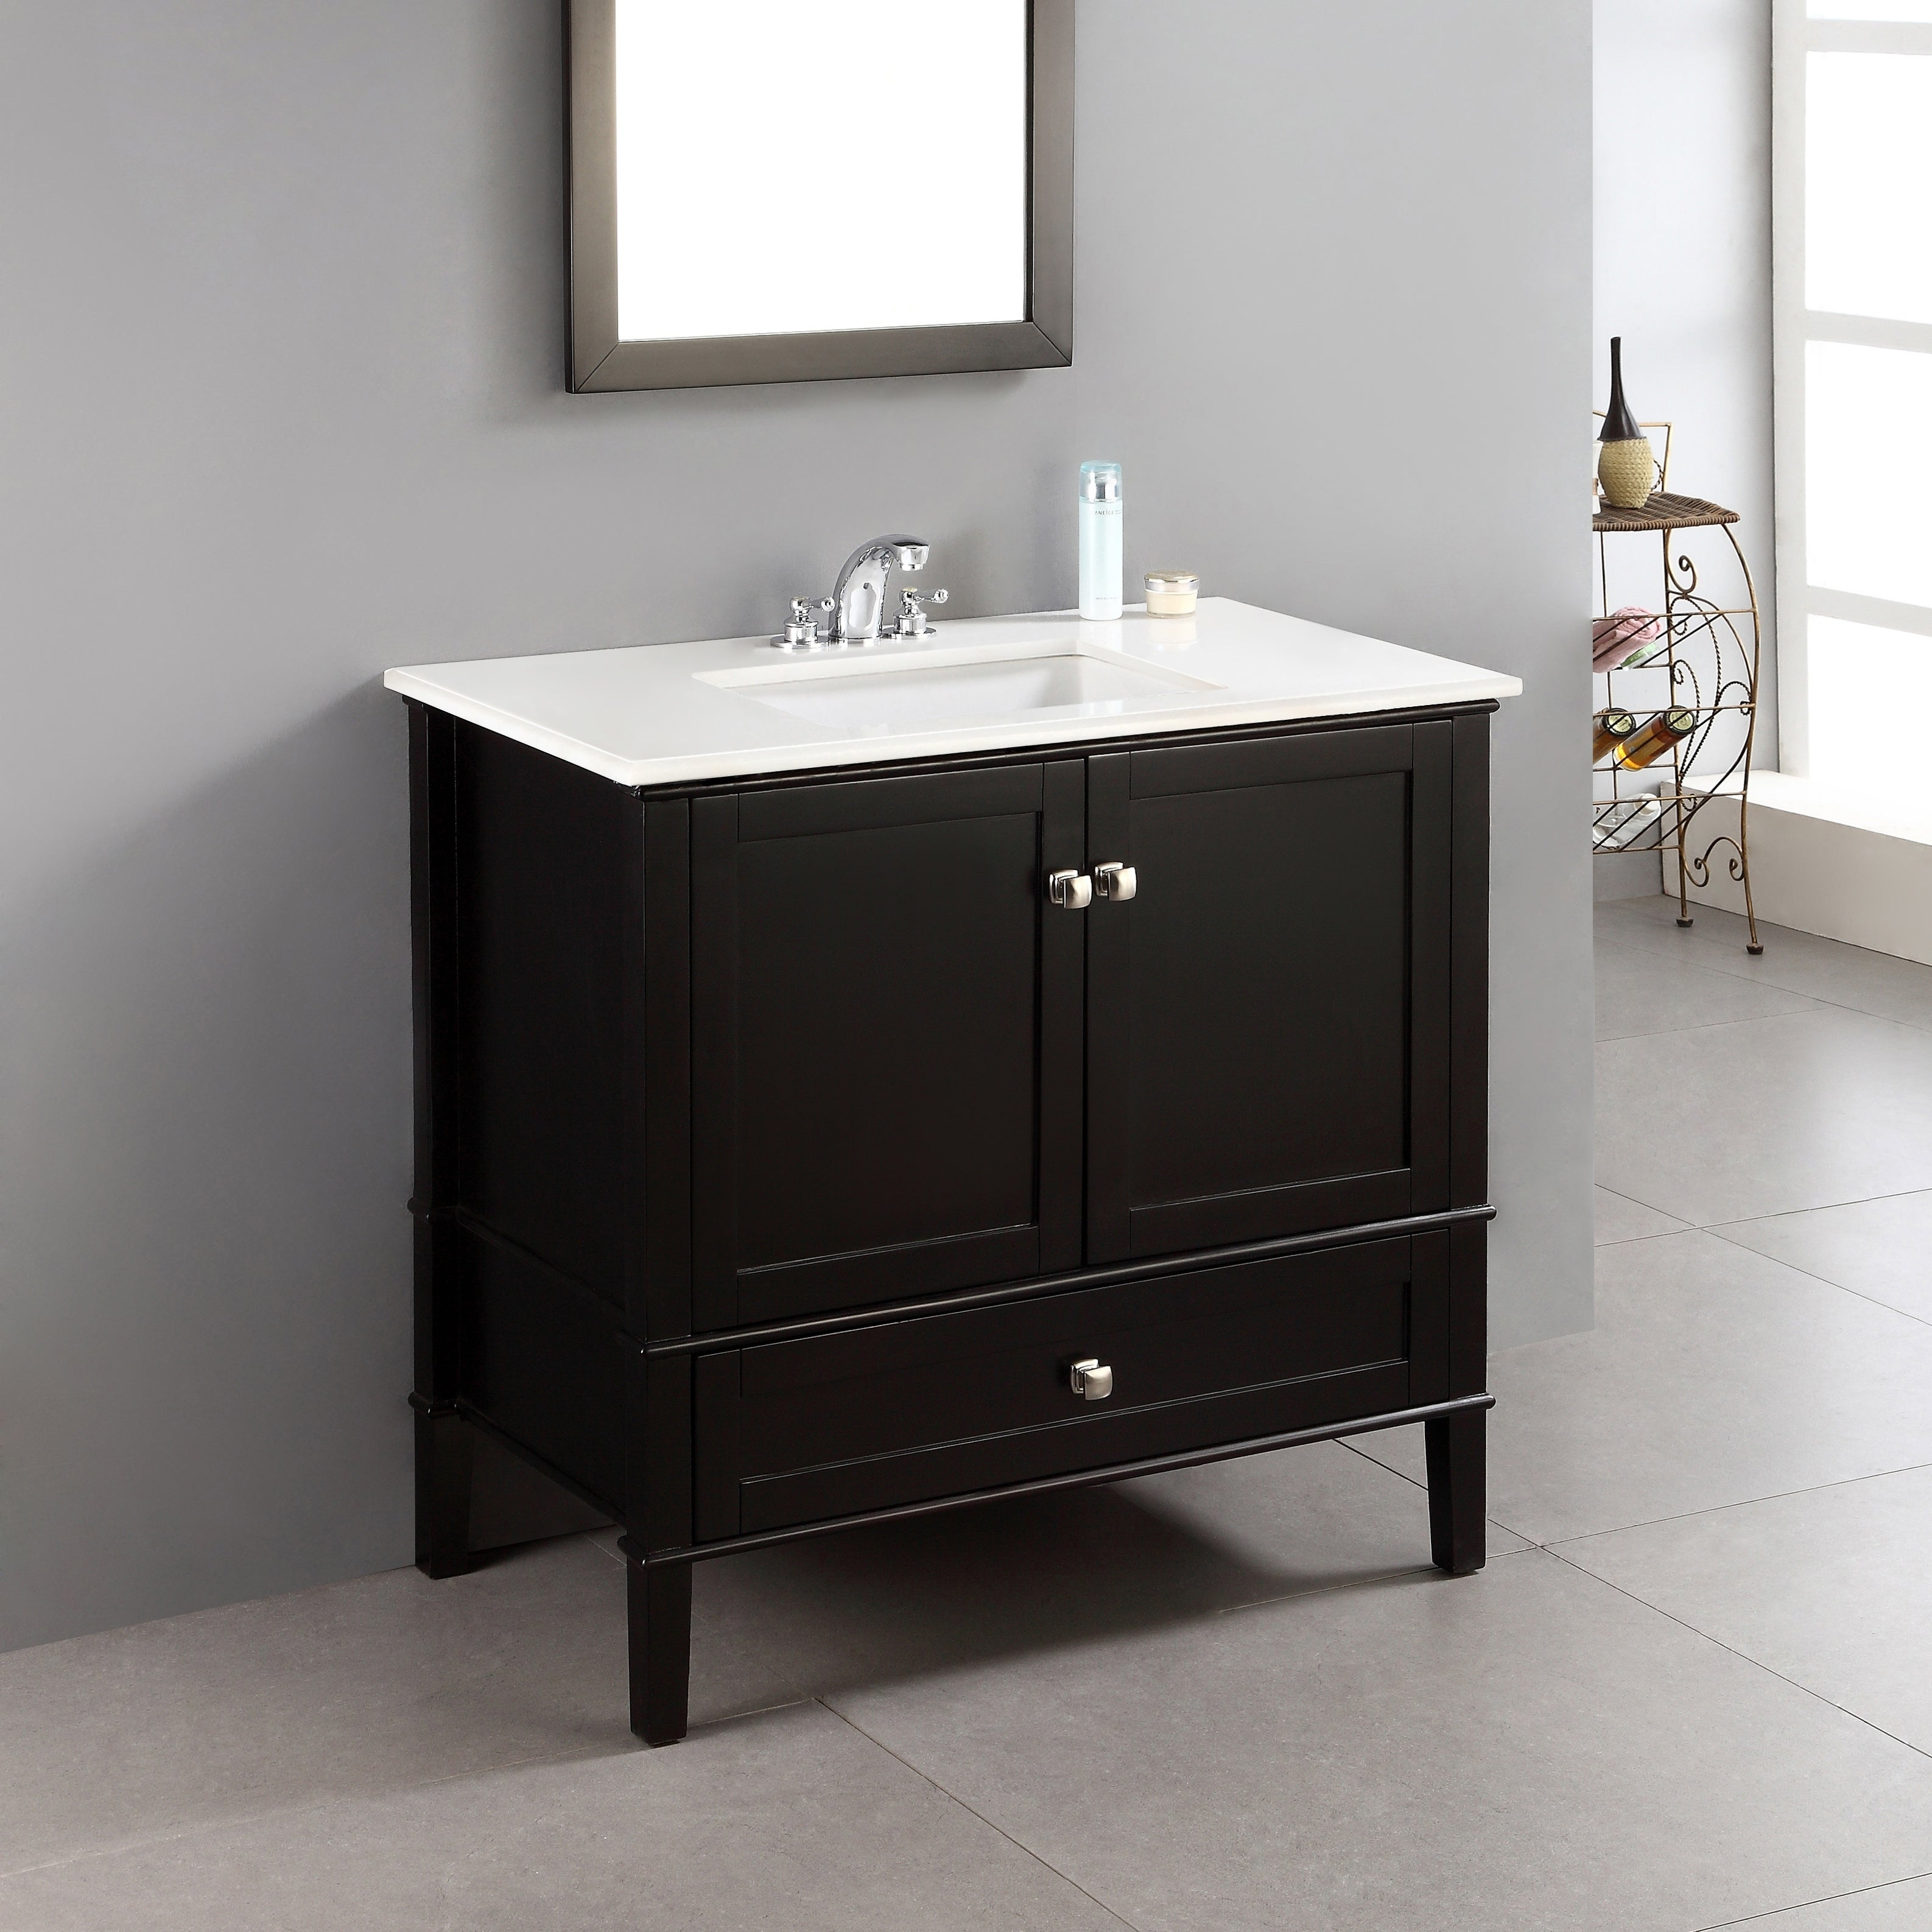 Wyndenhall Windham 36 Inch Contemporary Bath Vanity In Black With White Engineered Quartz Marble Top Overstock 6771710